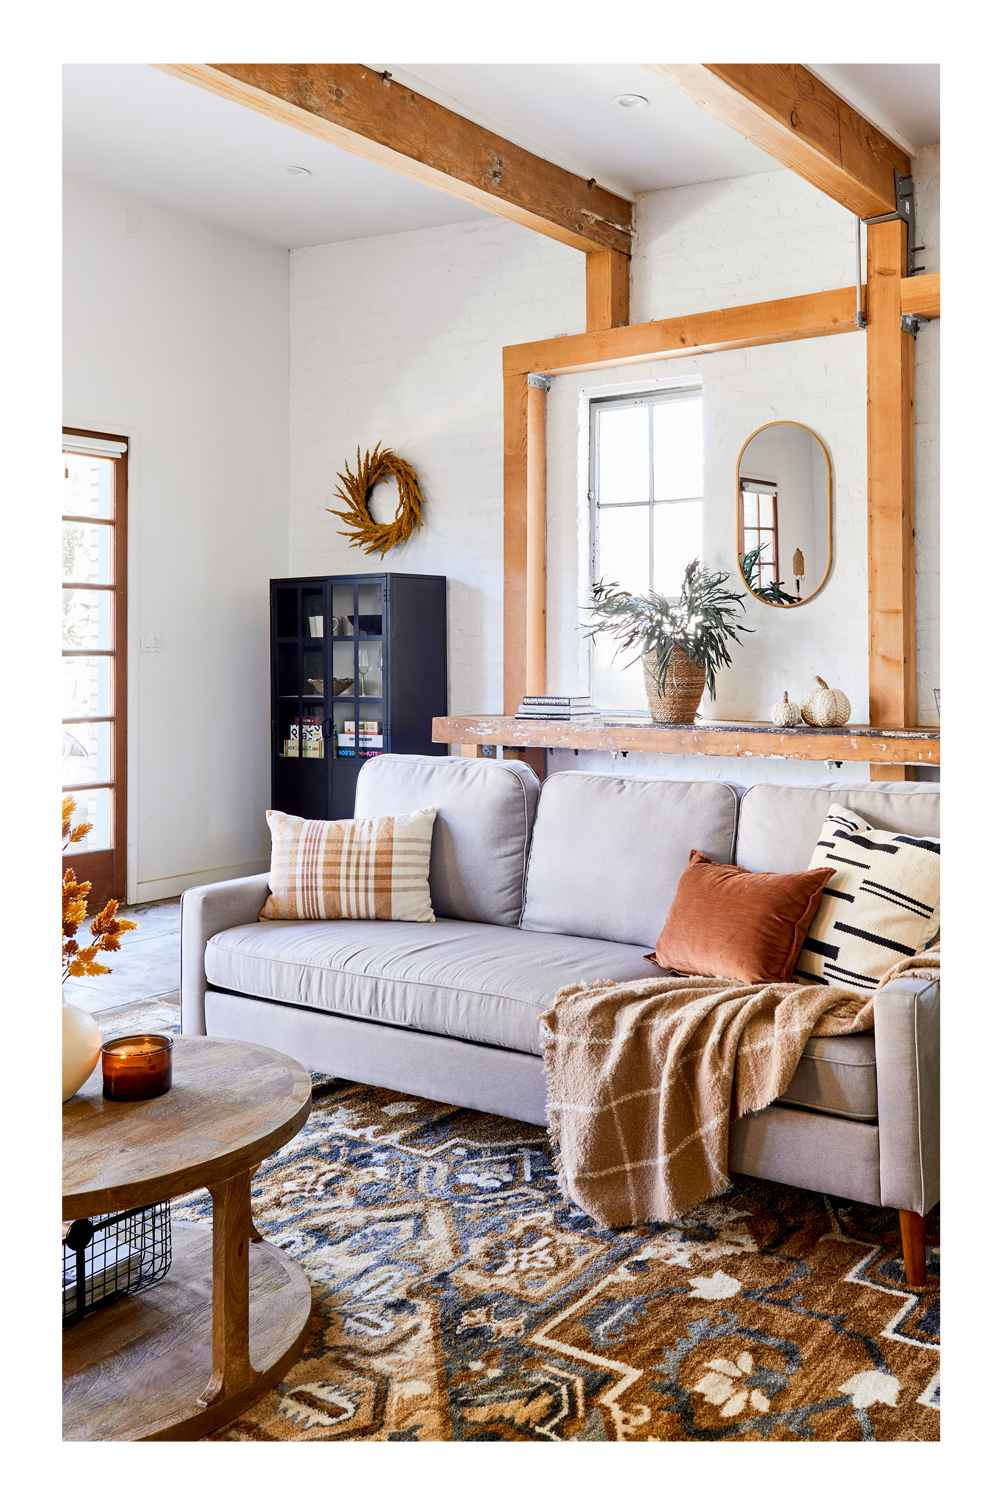 """5'x7' Printed Persian Geometric Design Tufted Area Rugs Gold - Threshold™, Castalia Round Natural Wood Coffee Table - Threshold™, 20"""" Artificial Goldenrod Wreath Yellow - Threshold™, Half Glass Display Cabinet Black - Threshold™, 13.5"""" x 10"""" Abaca Woven Harvest Vase Brown - Threshold™, 24"""" Preserved Willow Eucalyptus Stem Green - Threshold™, 14oz Lidded Amber Glass Jar Crackling Wooden 3-Wick Applewood and Amber Candle - Threshold™, 7"""" x 7"""" Earthenware Fall Edit Texture Vase White - Threshold™, 28"""" Artificial Hops Stem - Threshold™, Metal 2-in-1 Wire Basket with Wood Handle Black - Project 62™, Prescott Sectional Sofa Light Gray - Threshold™, Londonberry Turned Accent Table Large Black - Threshold™, 16pc Porcelain Woodbridge Dinnerware Set White - Threshold™, 4pk Marble and Wood Coasters Dark Gray - Threshold™, Woven Broken Striped Square Throw Pillow Cream/Black - Threshold™, Cotton Velvet Lumbar Throw Pillow Brown - Threshold™, Boucle Windowpane Plaid Throw Blanket Neutral - Threshold™, Oblong Woven Yarn Dye Plaid Decorative Throw Pillow Cream/Caramel - Threshold™, Small Wire Decorative Basket with Copper Handle - Threshold™, 7"""" x 7.8"""" Woven Corn Husk Pumpkin Figurine Cream - Threshold™, 5"""" x 4.7"""" Woven Corn Husk Pumpkin Figurine Cream - Threshold™, (Set of 2) 11"""" x 14"""" Oak Leaves Framed Wall Art - Threshold™, 16""""x28"""" Stamped Metal Mirror Brass - Project 62™, 4"""" x 10"""" Decorative Earthenware Bowl Black - Threshold™, 25oz Metal Leaf Serving Dish - Threshold™"""